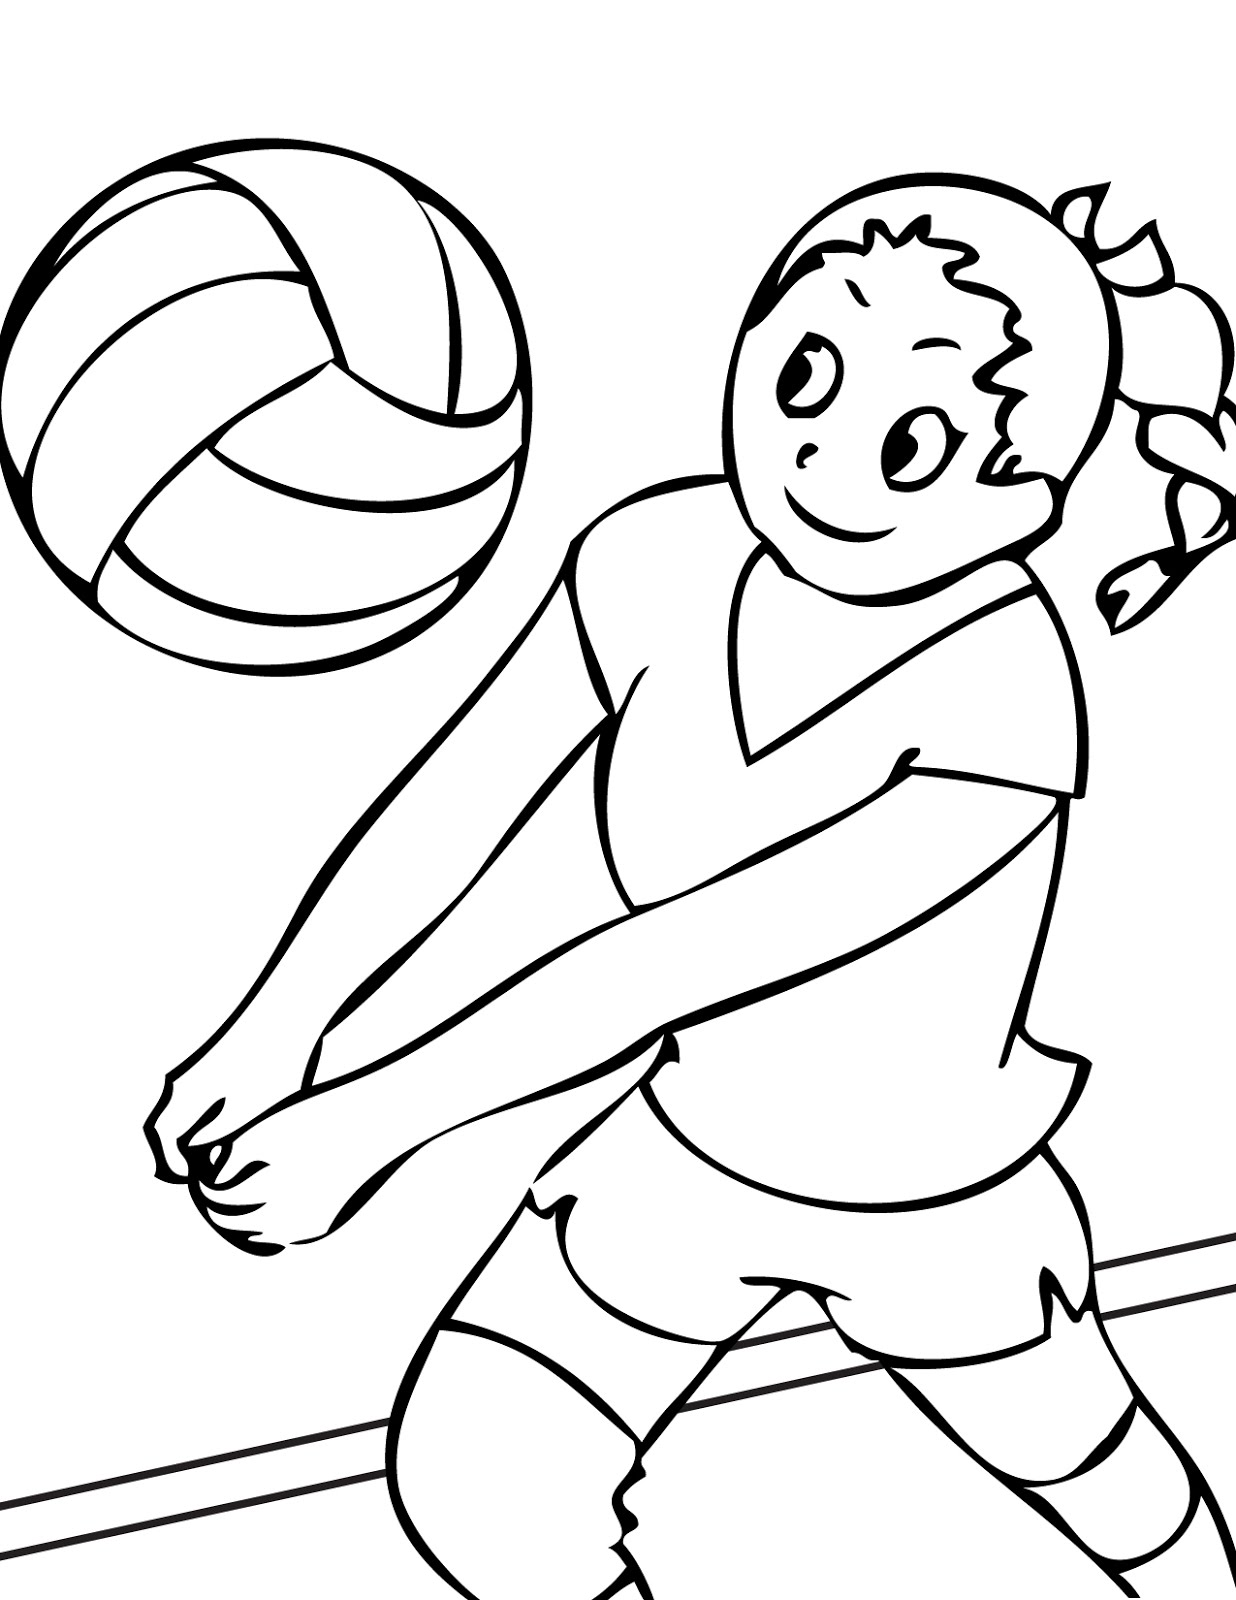 sports coloring pages for kid - photo#3